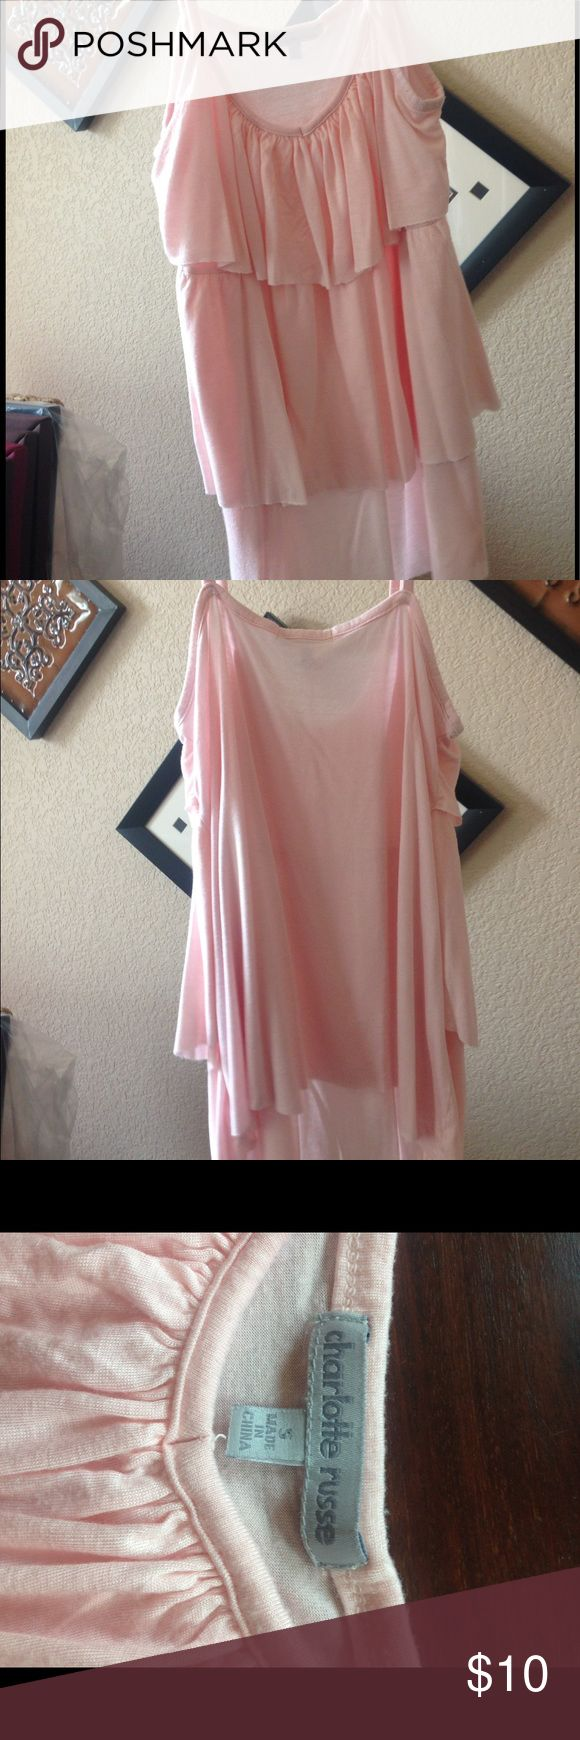 Size S Charlotte Rouse Ruffled Tank Cute pastel pink ruffled tank, perfect for making an office outfit cute or for a light summer outfit. Charlotte Russe Tops Tank Tops